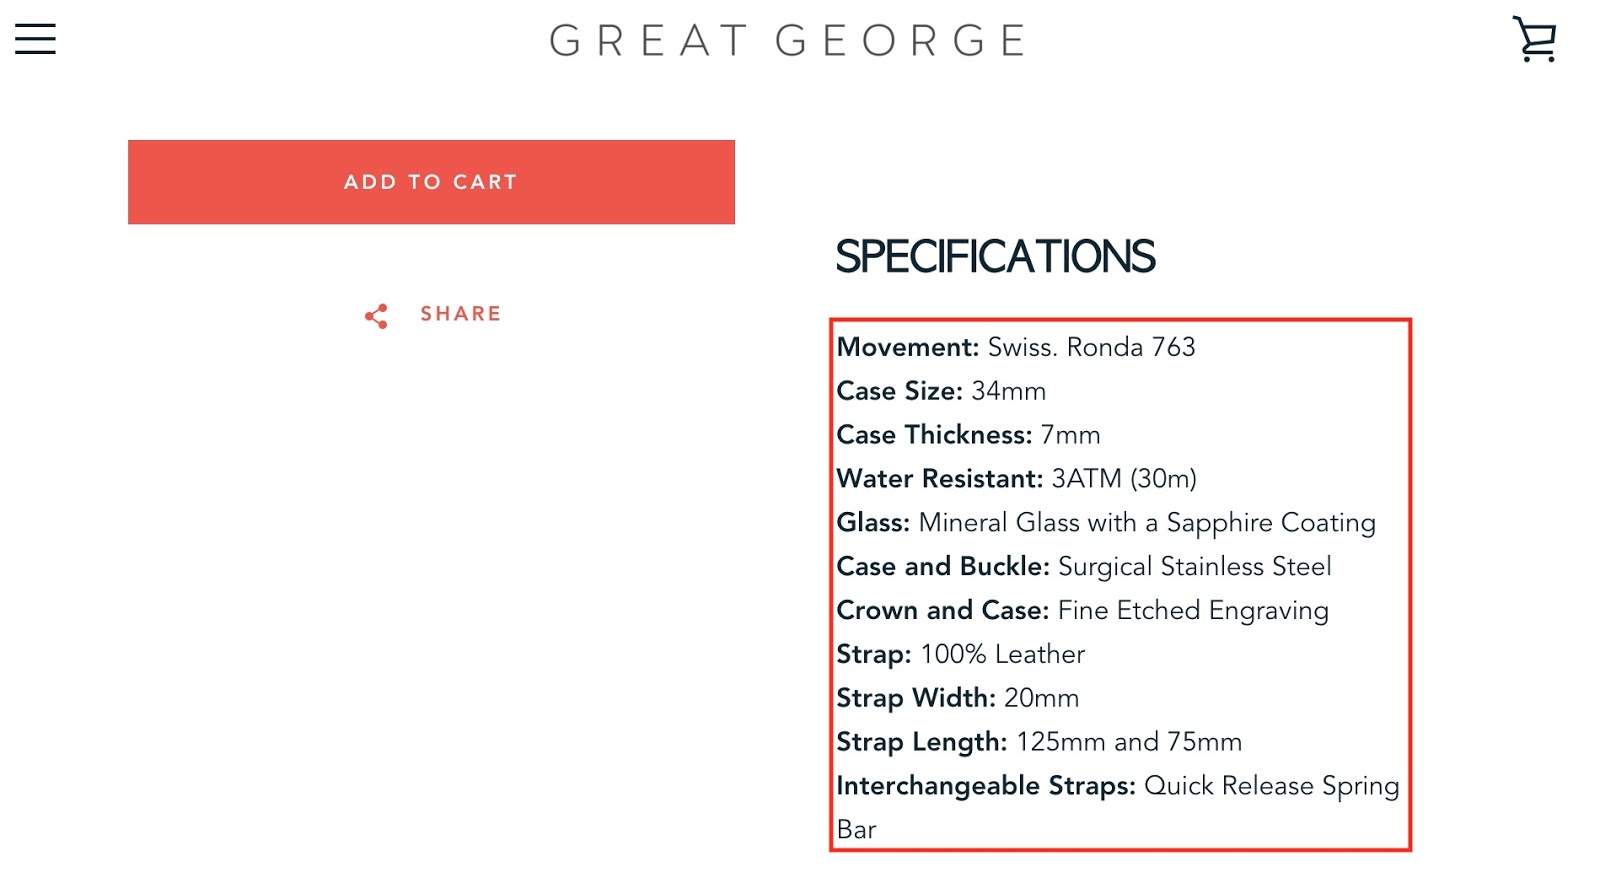 Screenshot showing product specifications